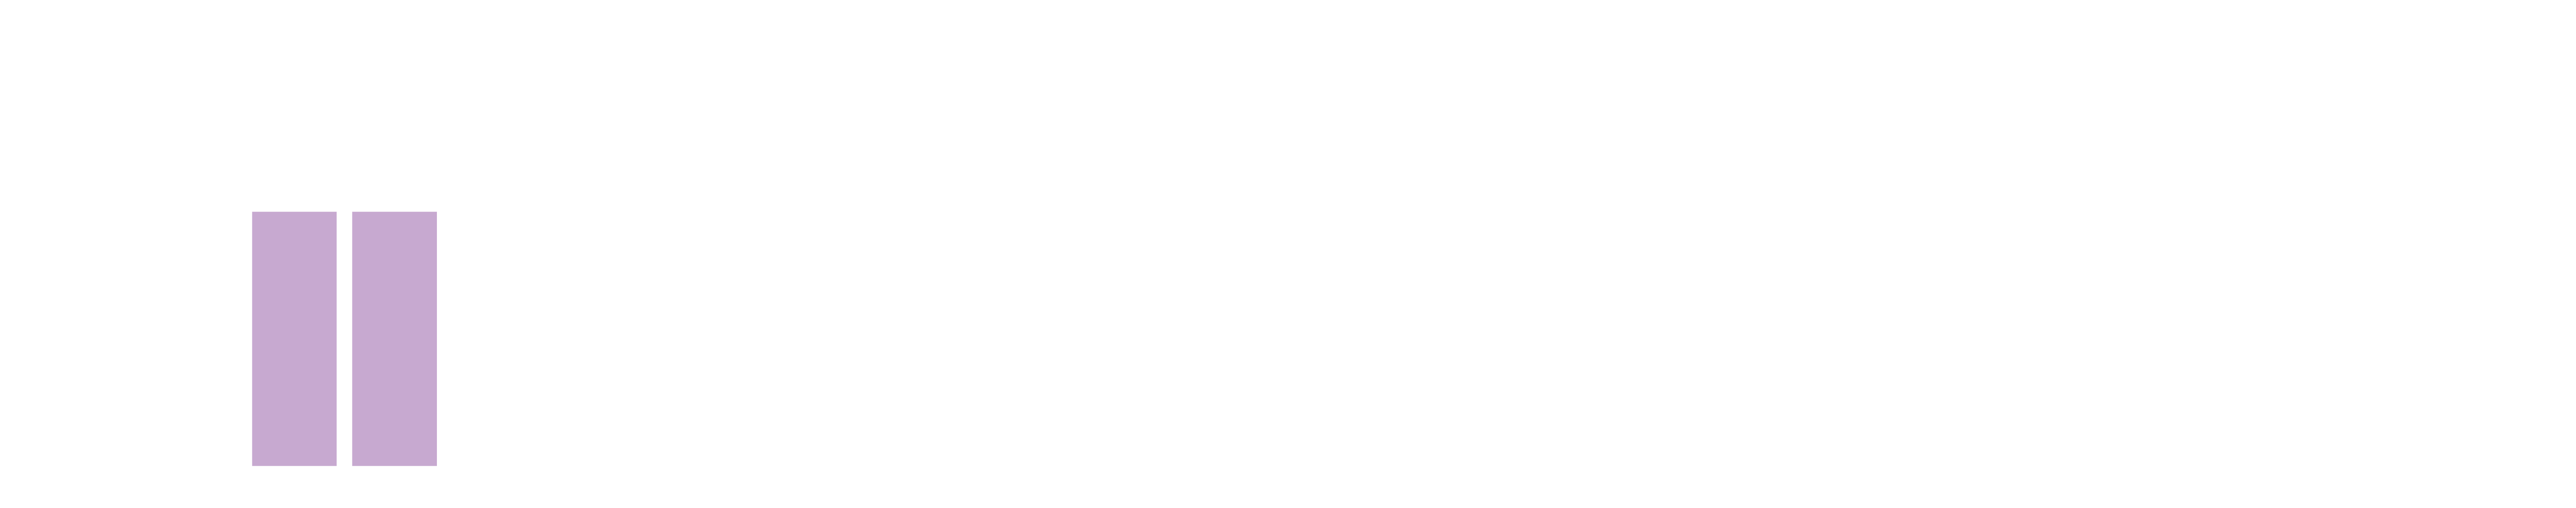 B2B Leaders Melbourne 2022 Logo color and white